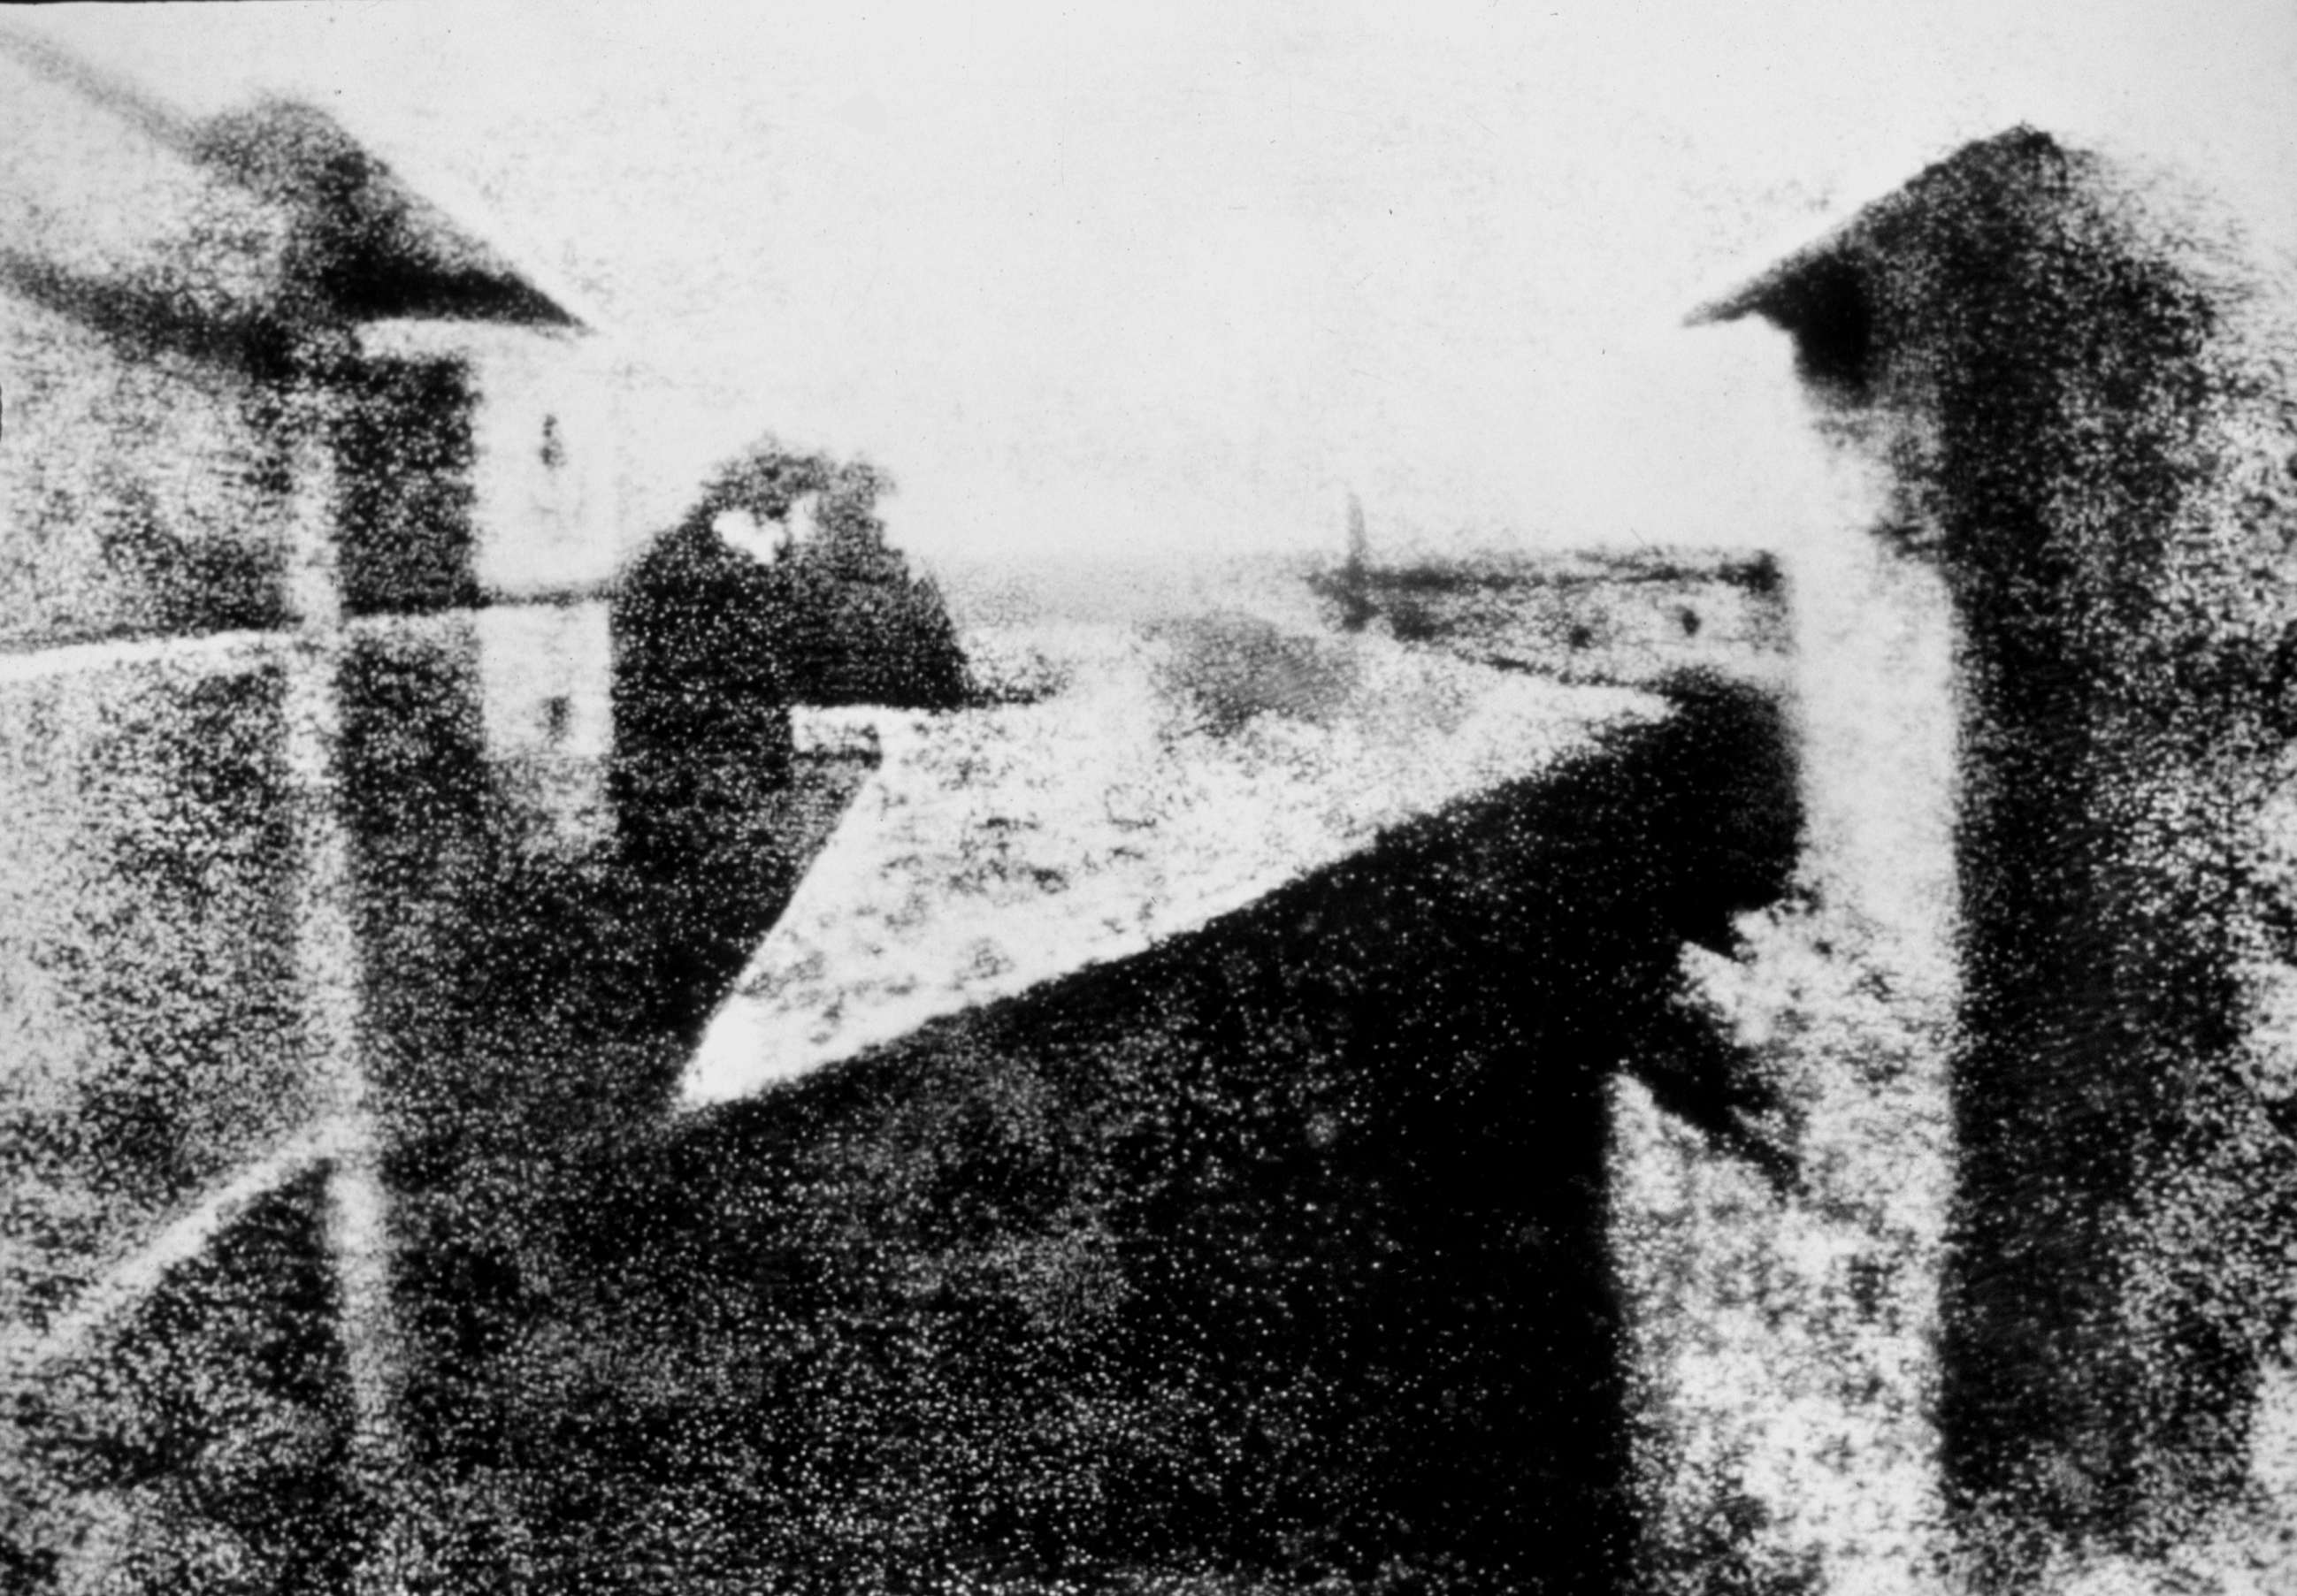 View from the Window at Le Gras. Joseph Nicéphore Niépce 1826